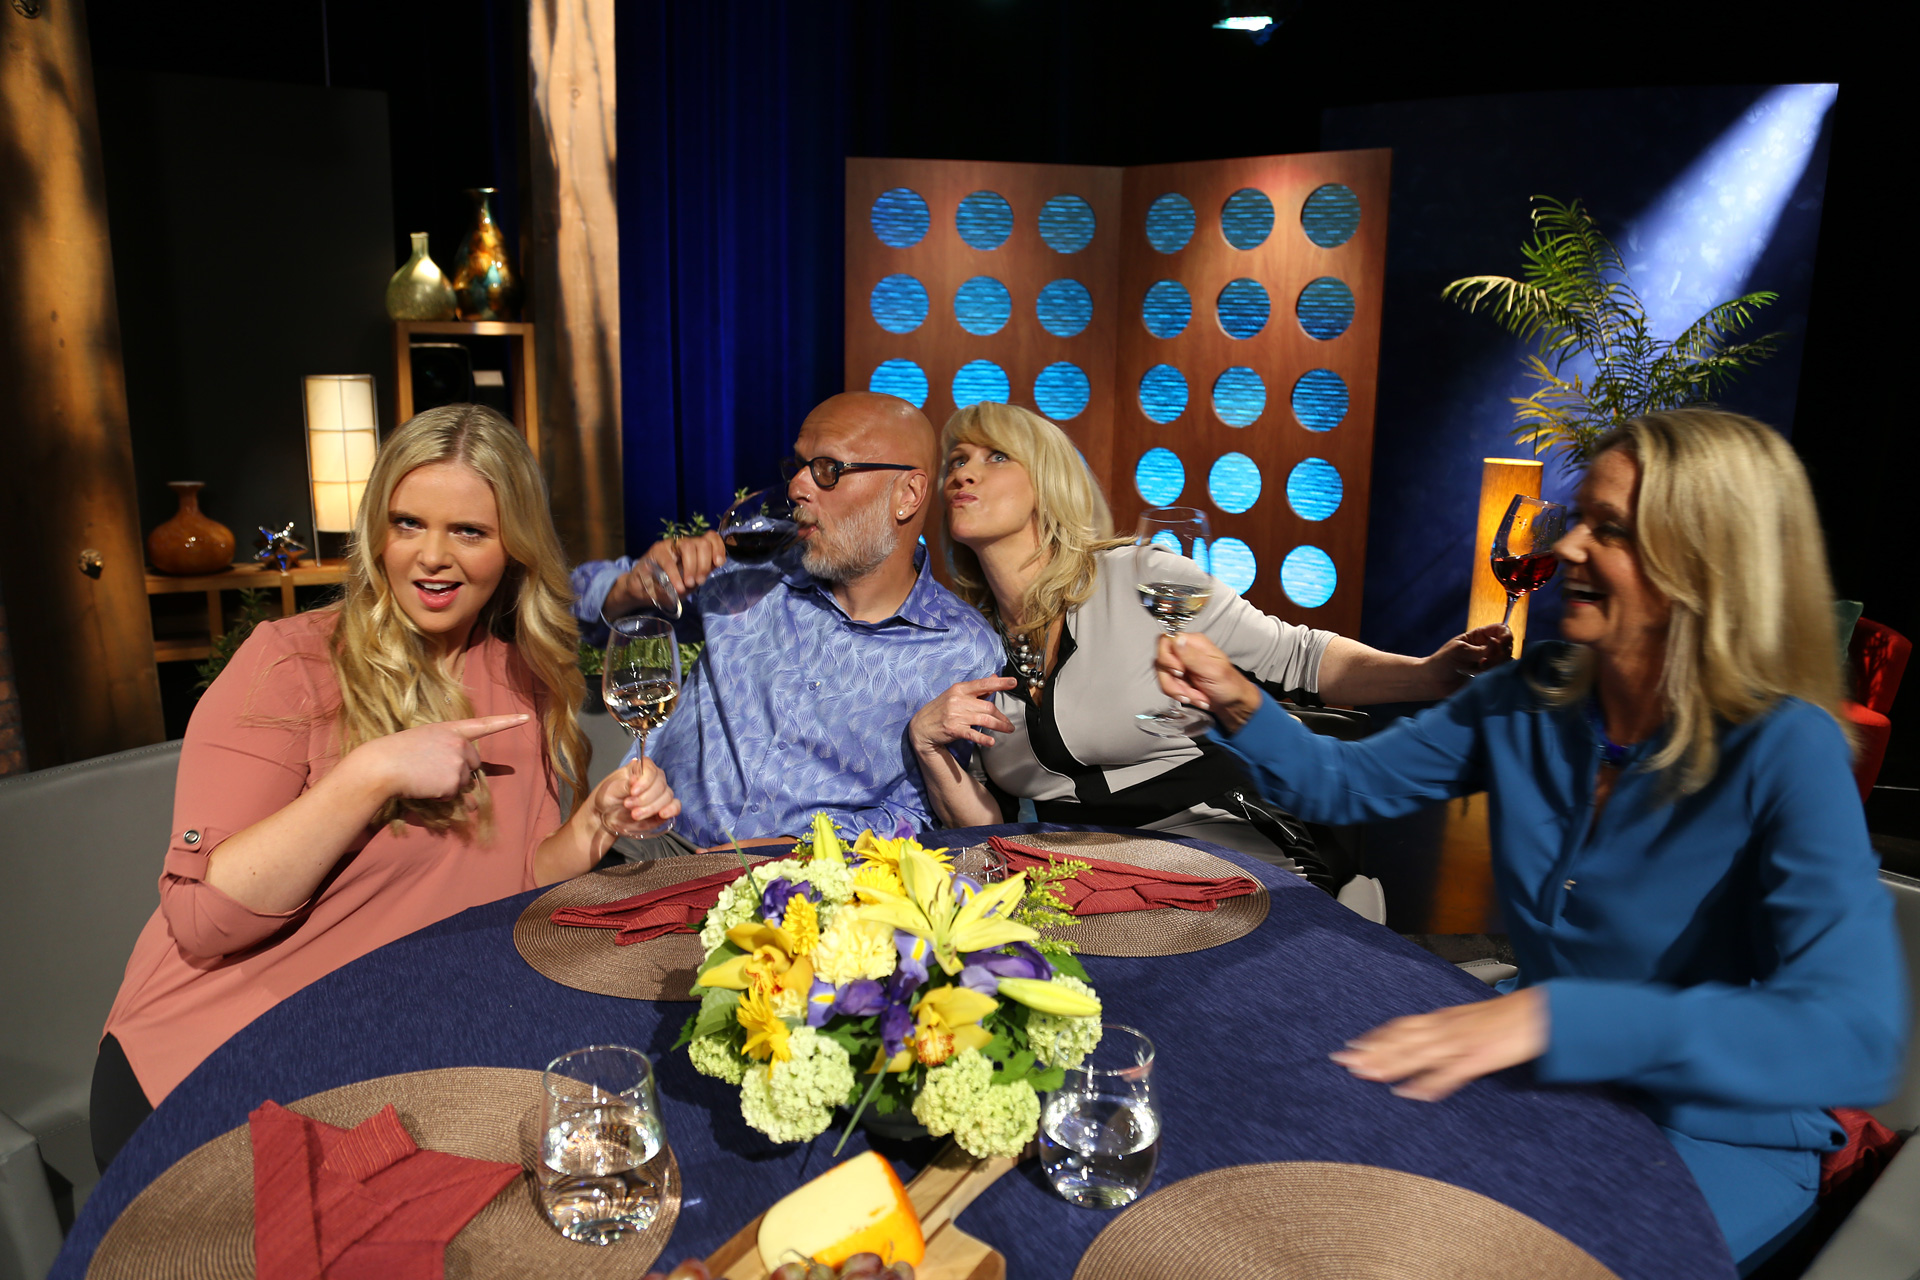 Host Leslie Sbrocco and guests having fun on the set of the episode 12 of season 11.